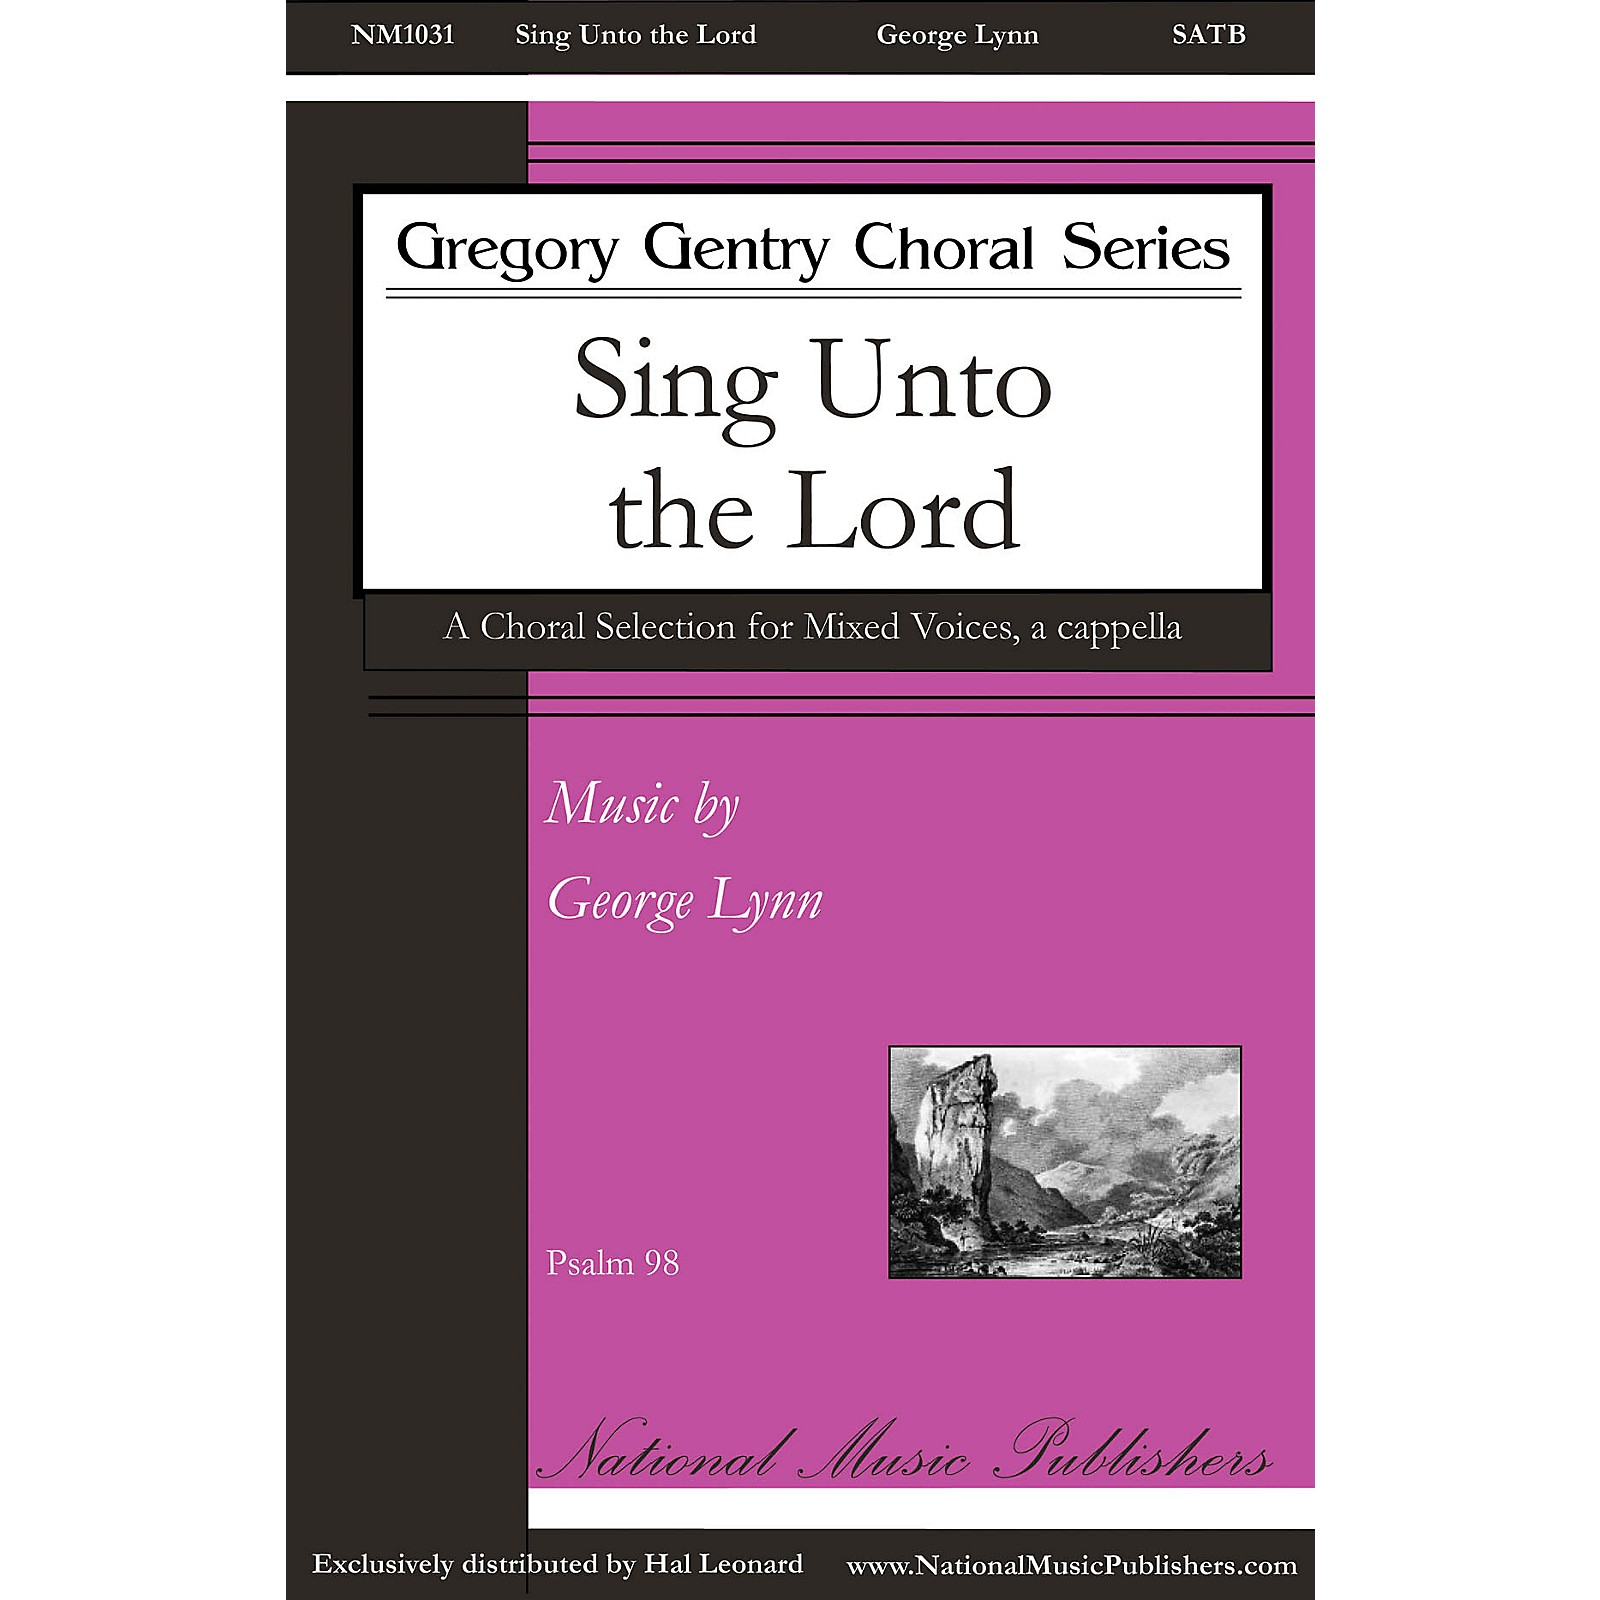 National Music Publishers Sing unto the Lord SATB a cappella composed by George Lynn